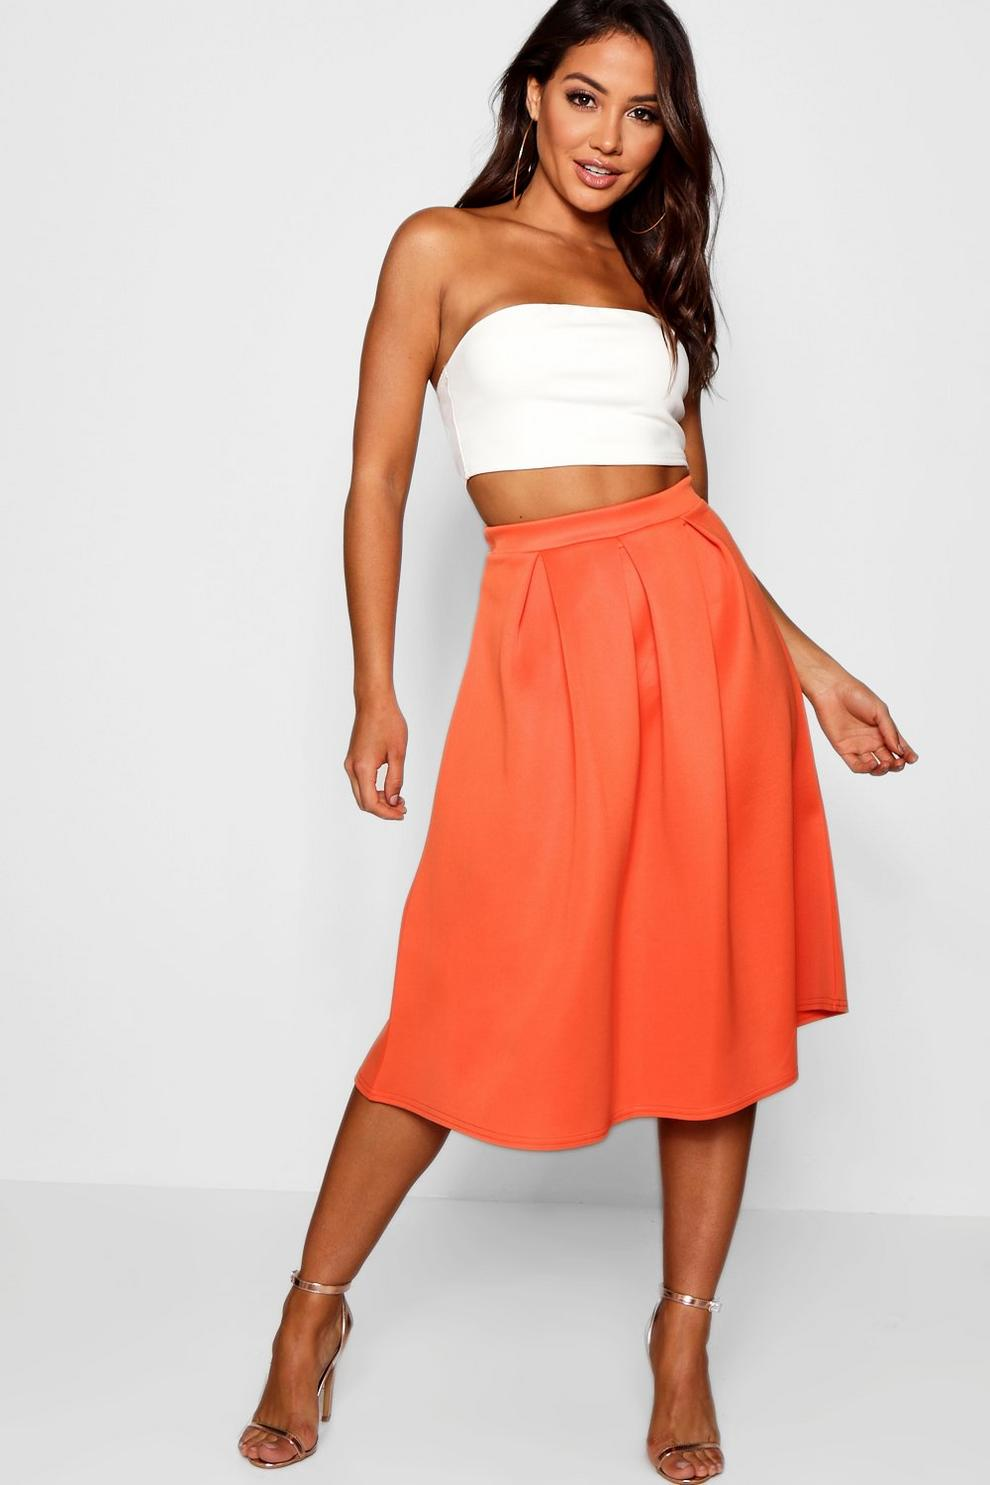 Crop Tops & Skirt (22)